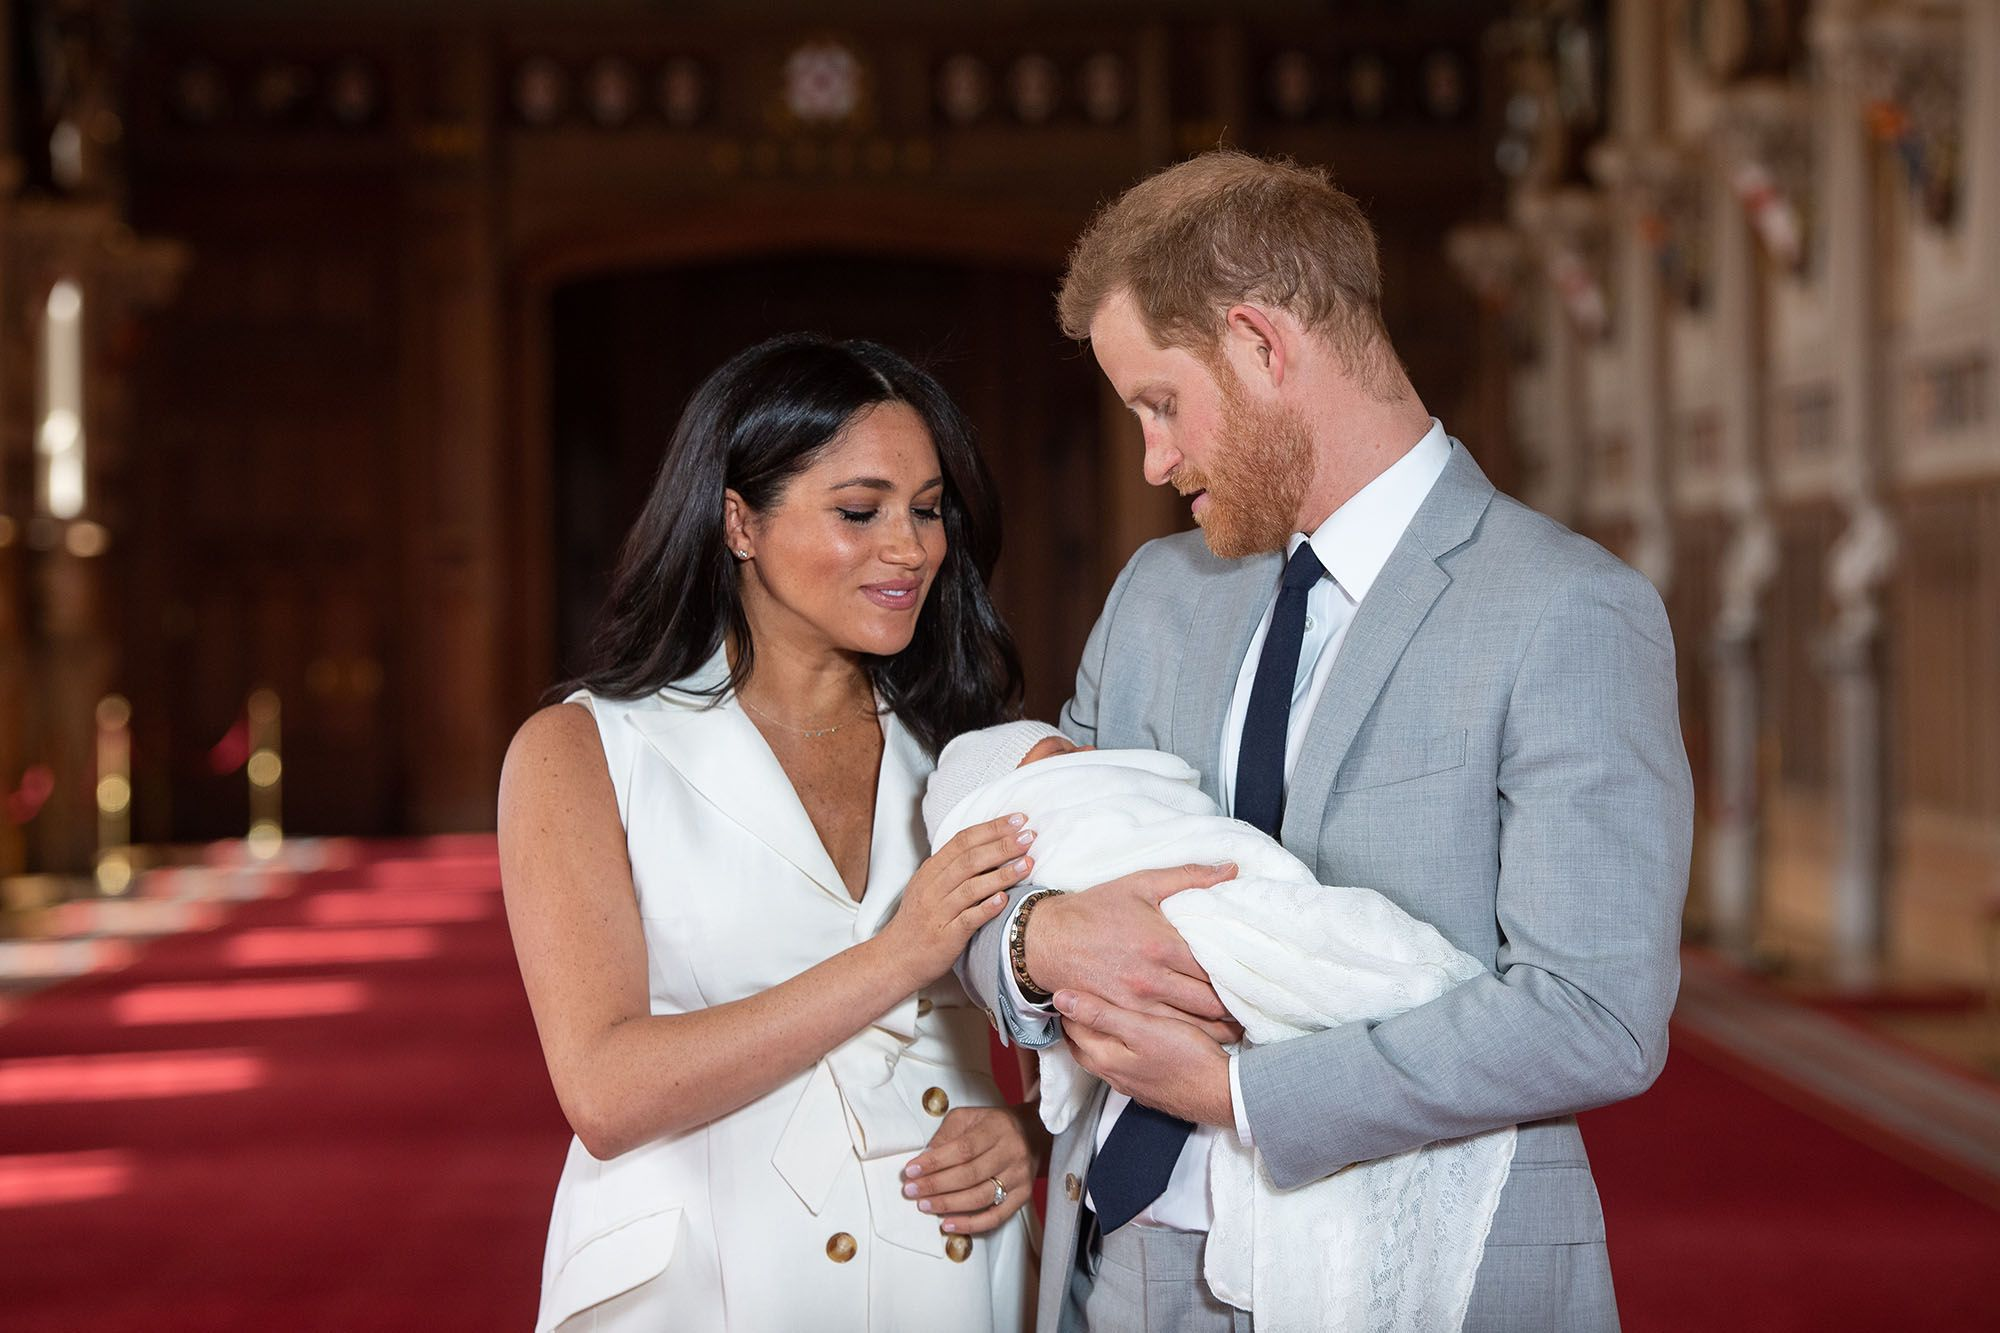 Meghan Markle and Prince Harry Were Given a Beautiful Gift From Disney for Their Son, Archie Harrison